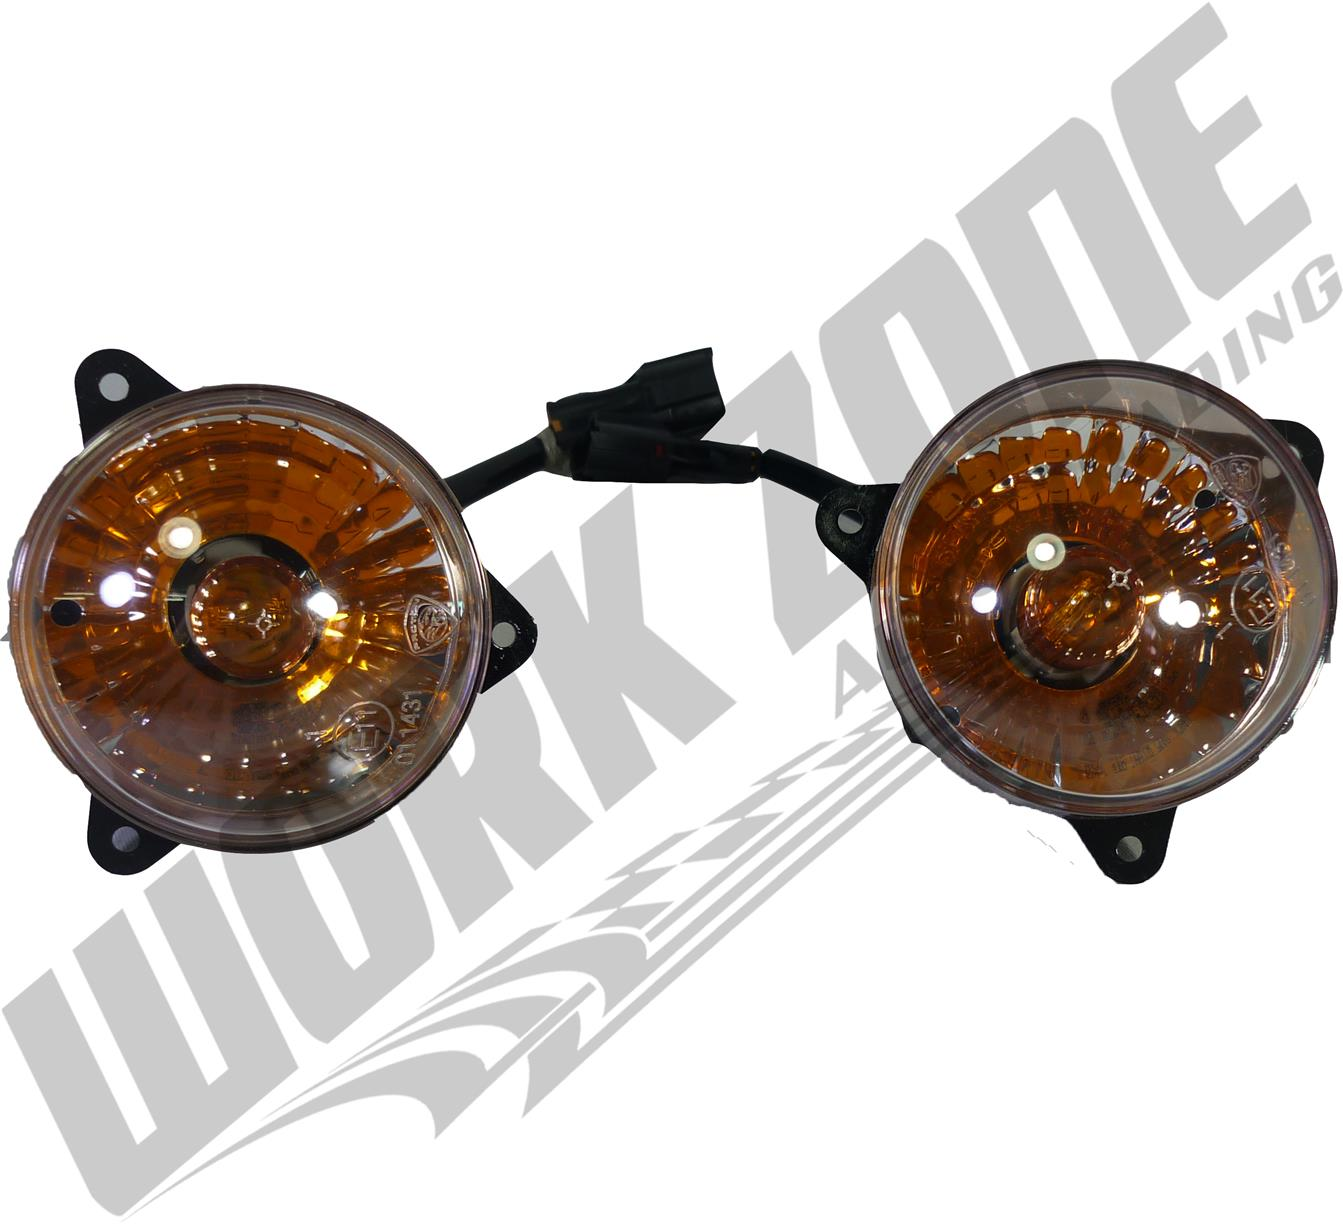 WAJA CAMPRO 2007 SMALL FOG LAMP SET ORIGINAL SET